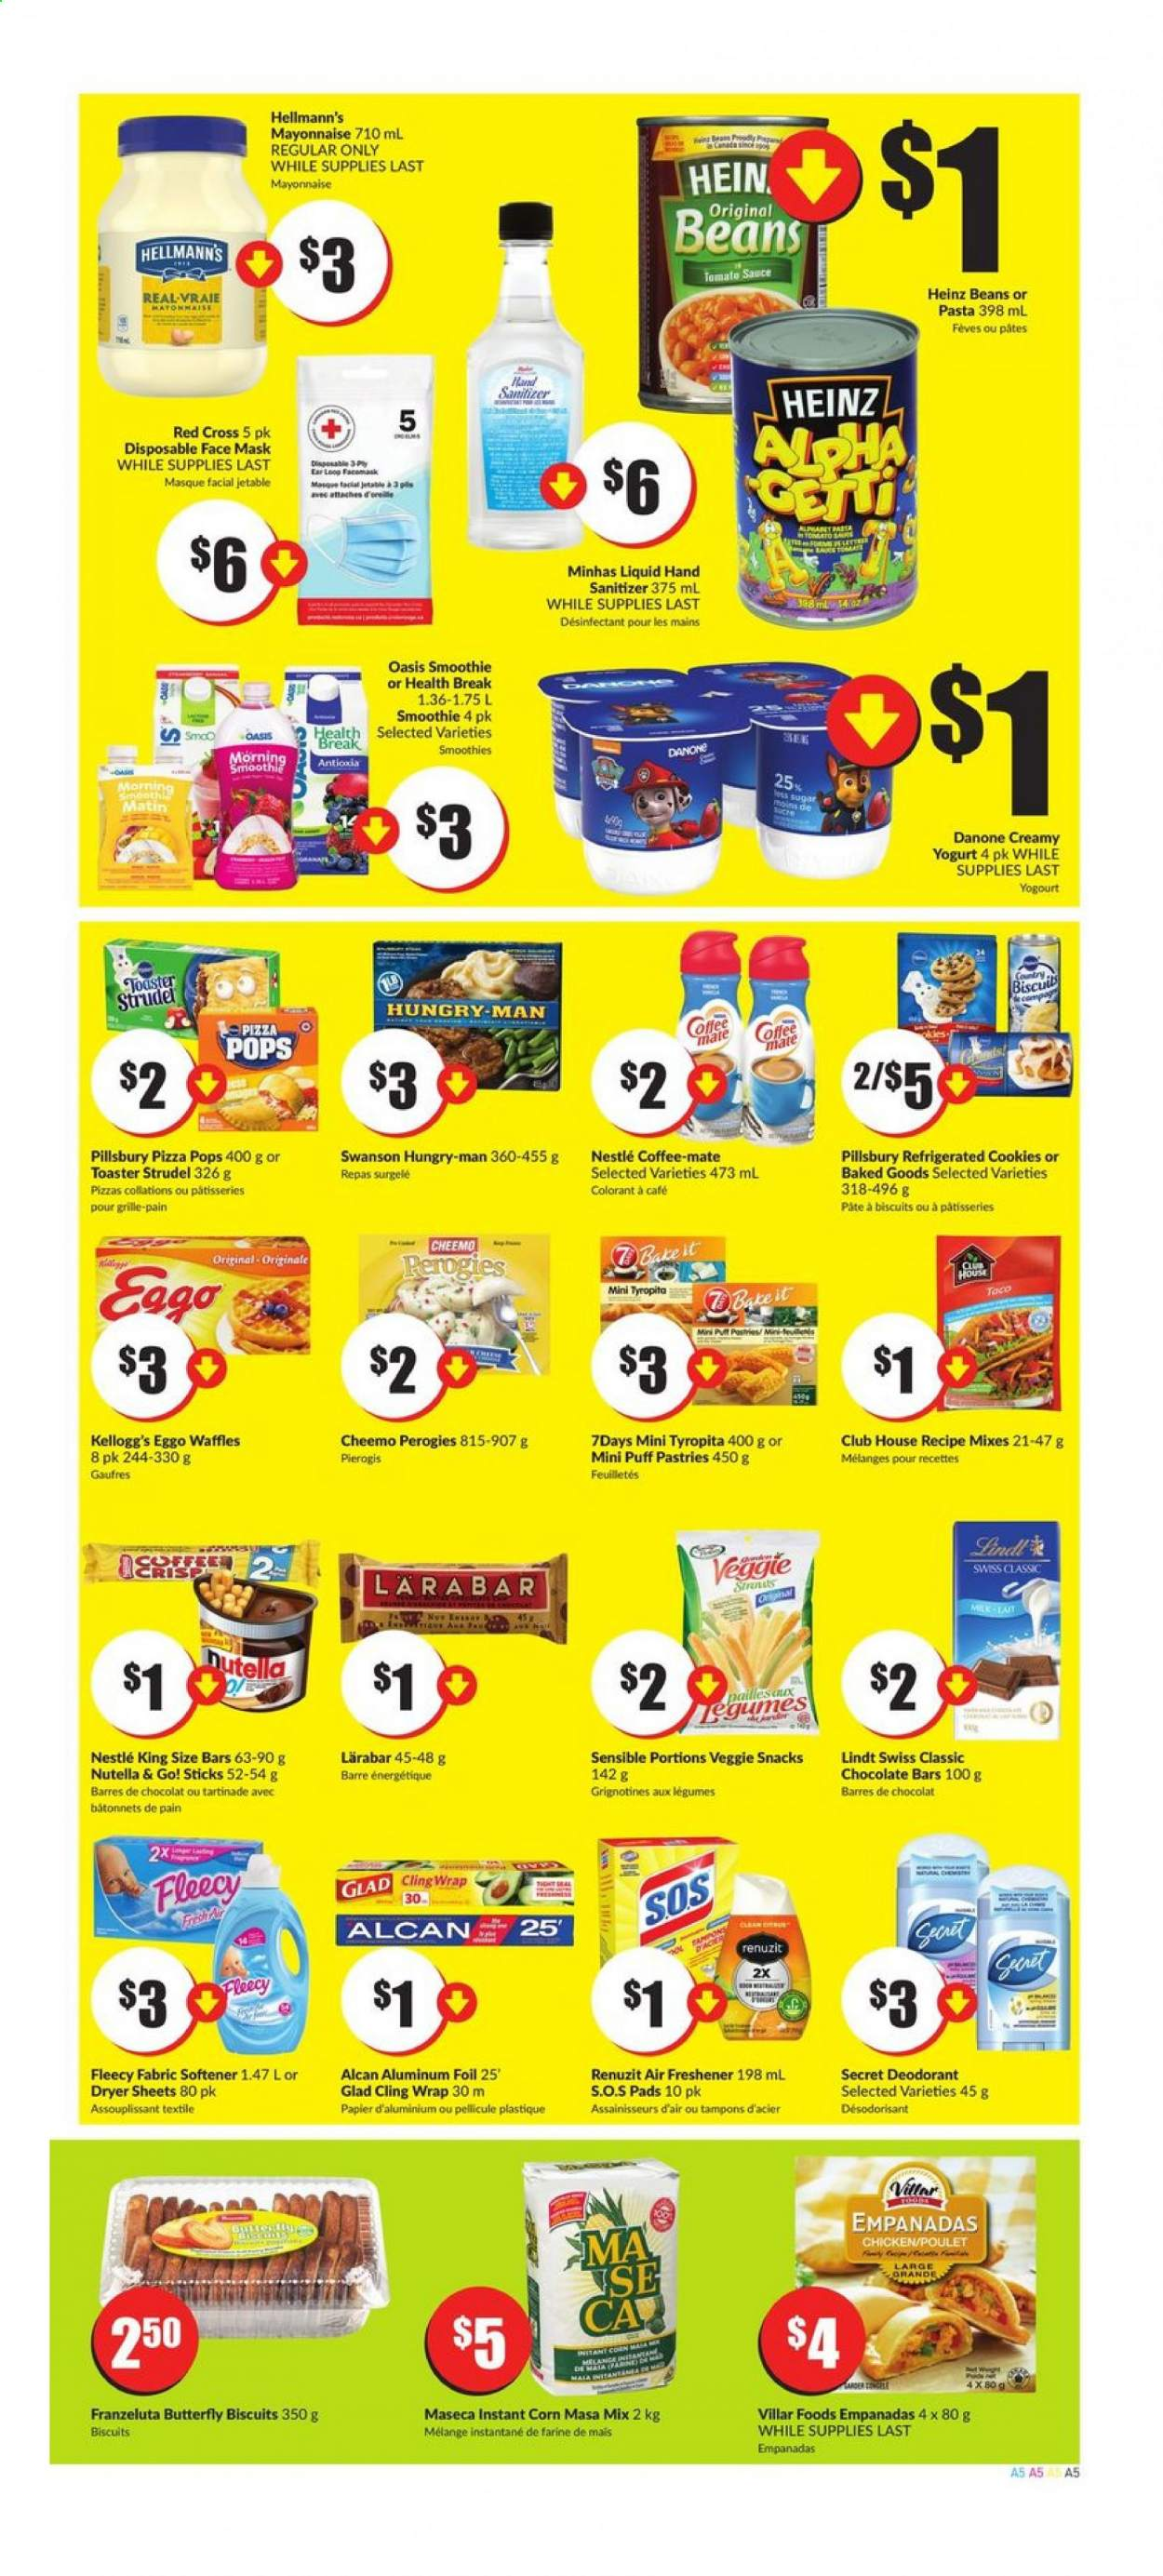 FreshCo. Flyer - August 06, 2020 - August 12, 2020 - Sales products - beans, biscuits, coffee-mate, cookies, corn, déodorant, dryer, mask, mate, mayonnaise, milk, nestlé, renuzit, secret, sugar, tomato sauce, veggie, wrap, yogurt, heinz, pizza, chicken, nutella, pads, chocolate, air freshener, softener, pasta, danone, toaster, lindt, sauce, poulet, chocolat, lait, café, biscuit, desodorisant, farine, fève, grille, kellogg's, masque, papier, pâtes, snacks, face mask, hand sanitizer, masque facial. Page 5.